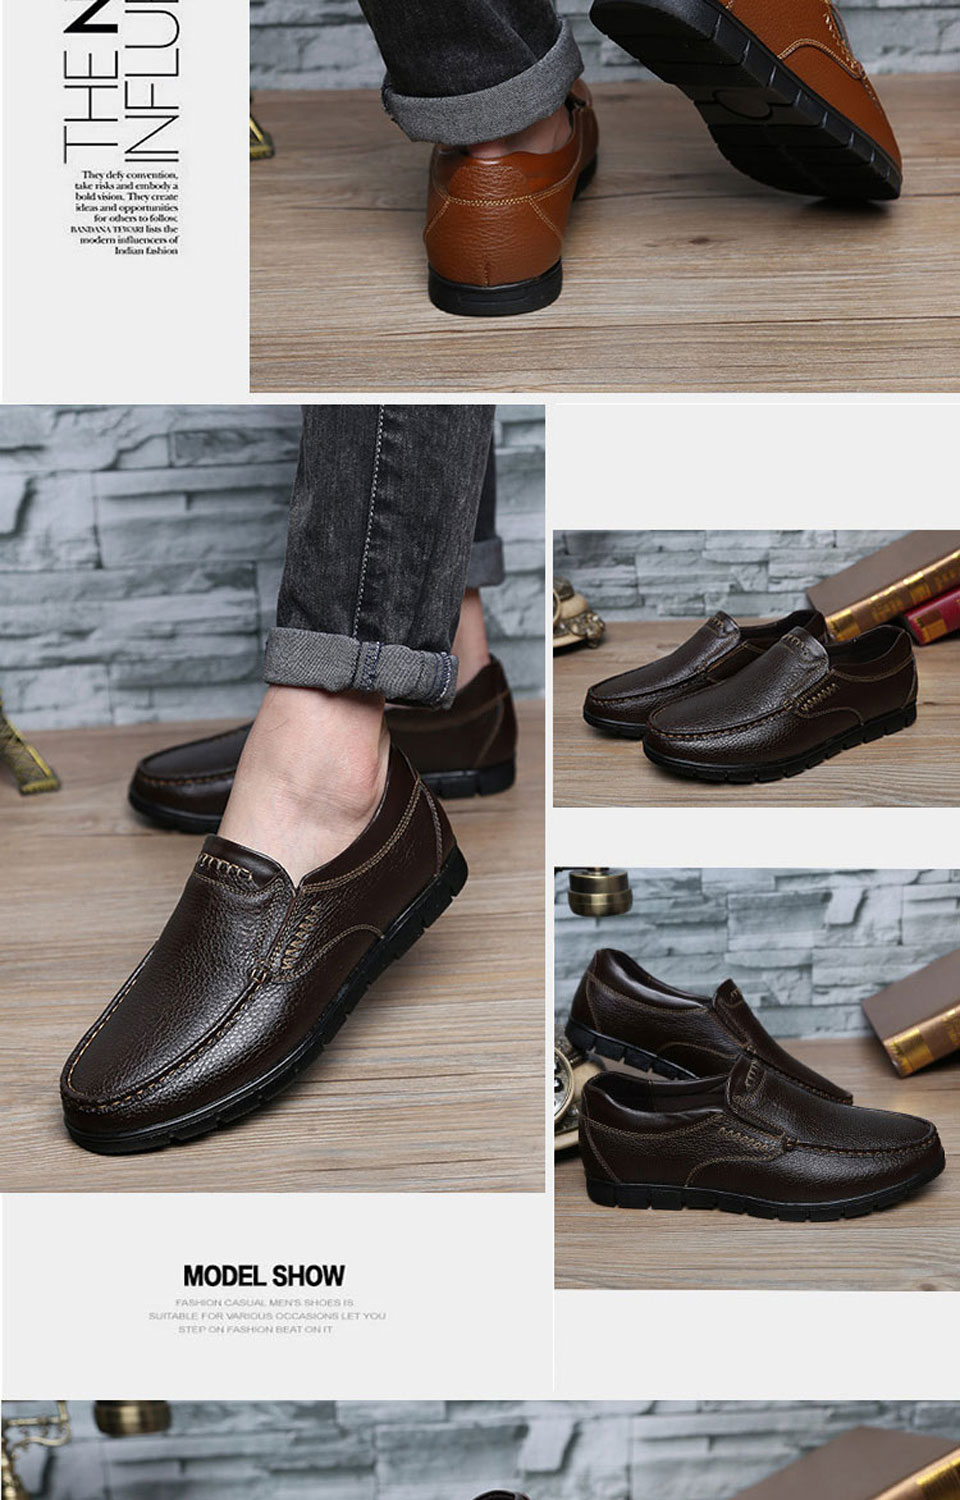 Formal Shoes Brand New Spring Autumn Italian Men Dress Formal Shoes Comfortable Slip-on Man Loafers Fashion Casual Mens Flats Oxford Shoes Relieving Rheumatism Shoes